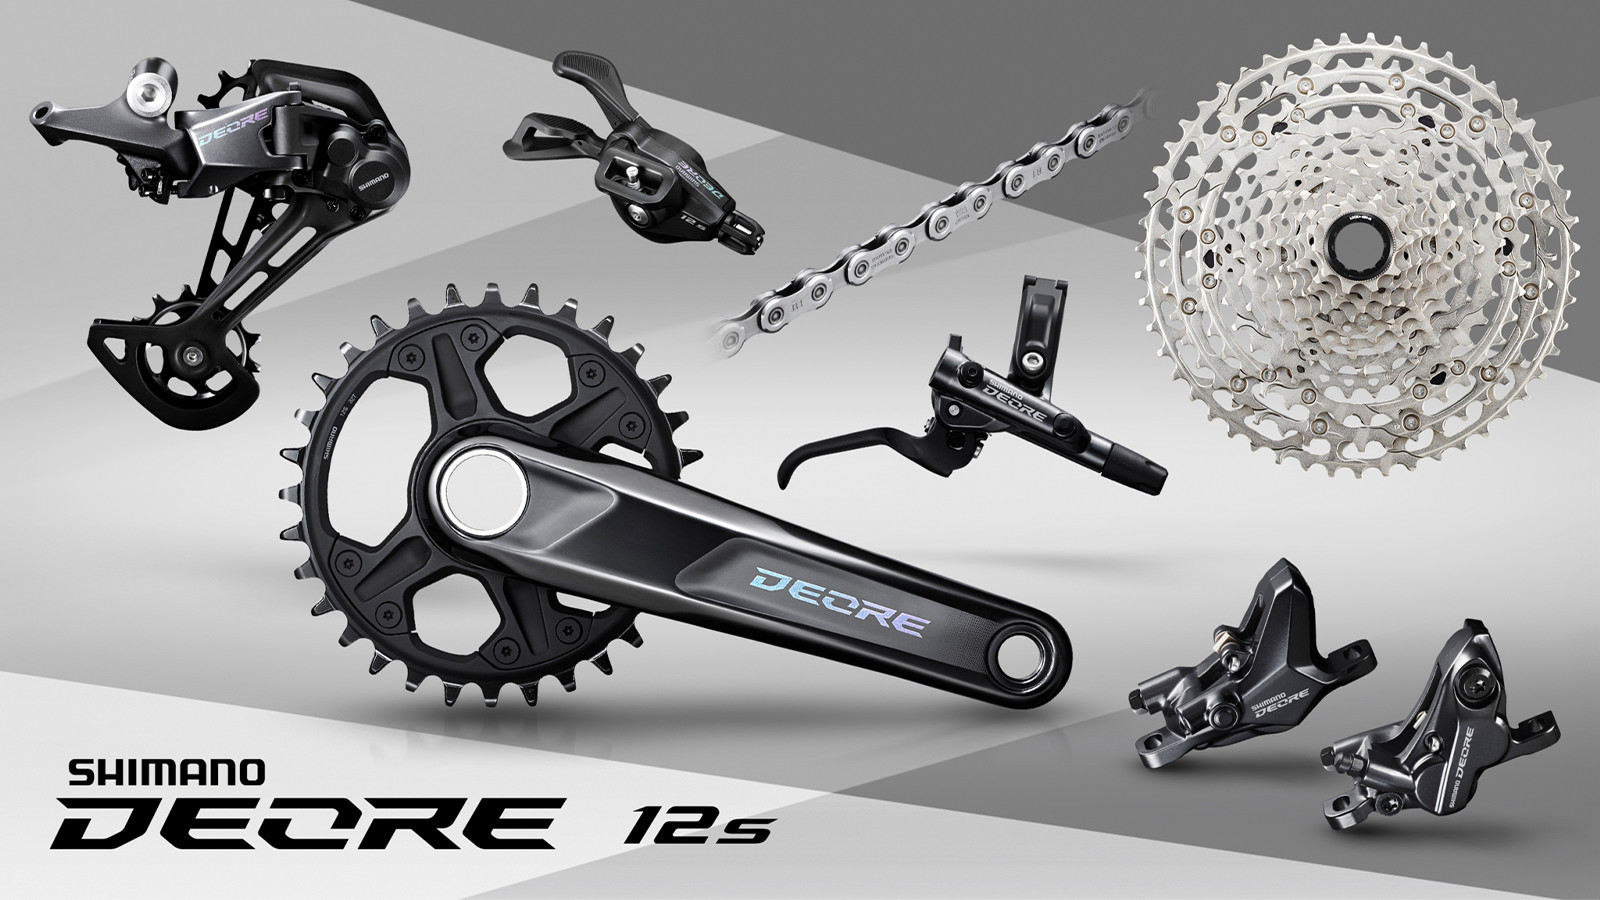 12-Speed for All - Shimano's All-New DEORE Drivetrain and Brakes